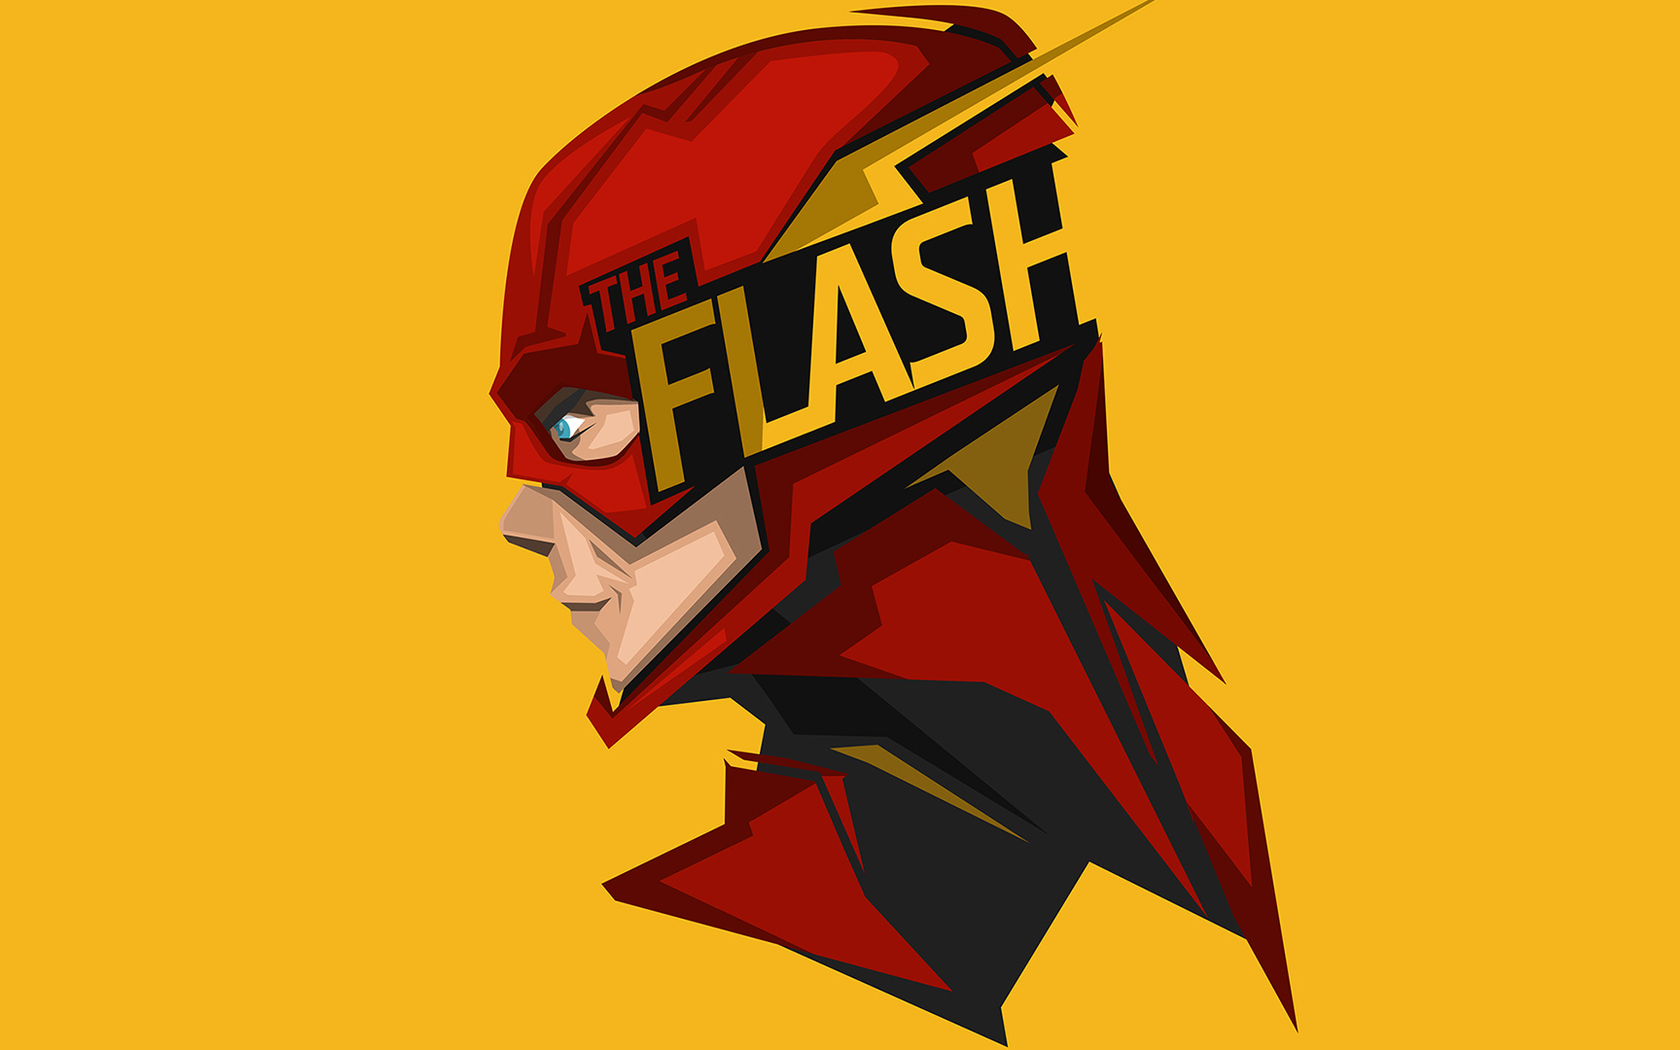 the-flash-abstract-art-qu.jpg